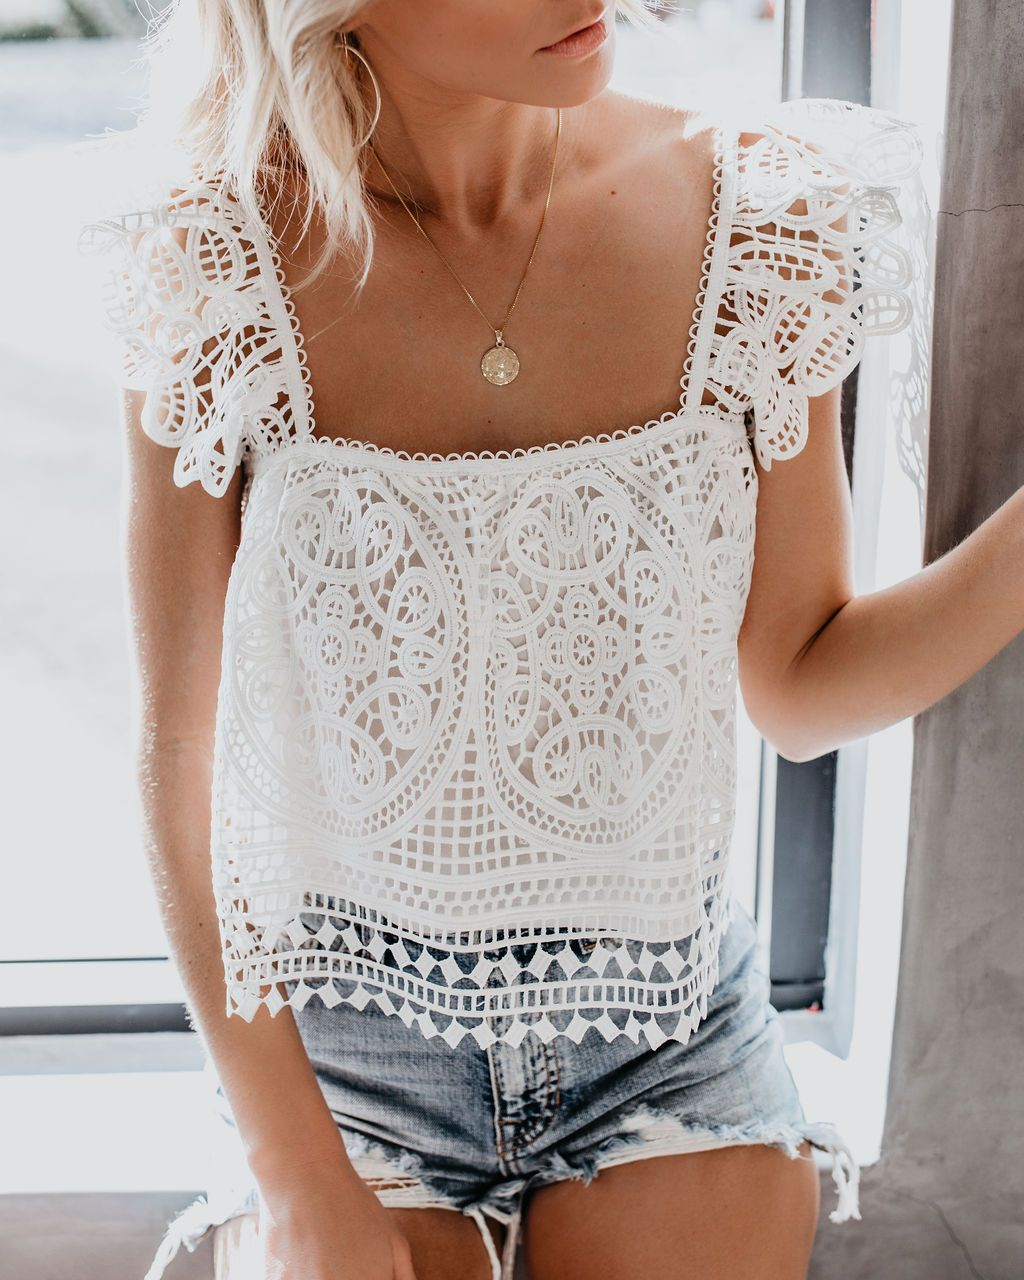 At Last Crochet Lace Crop Top White In 2020 Casual Lace Top Crop Top Outfits Lace Crop Tops